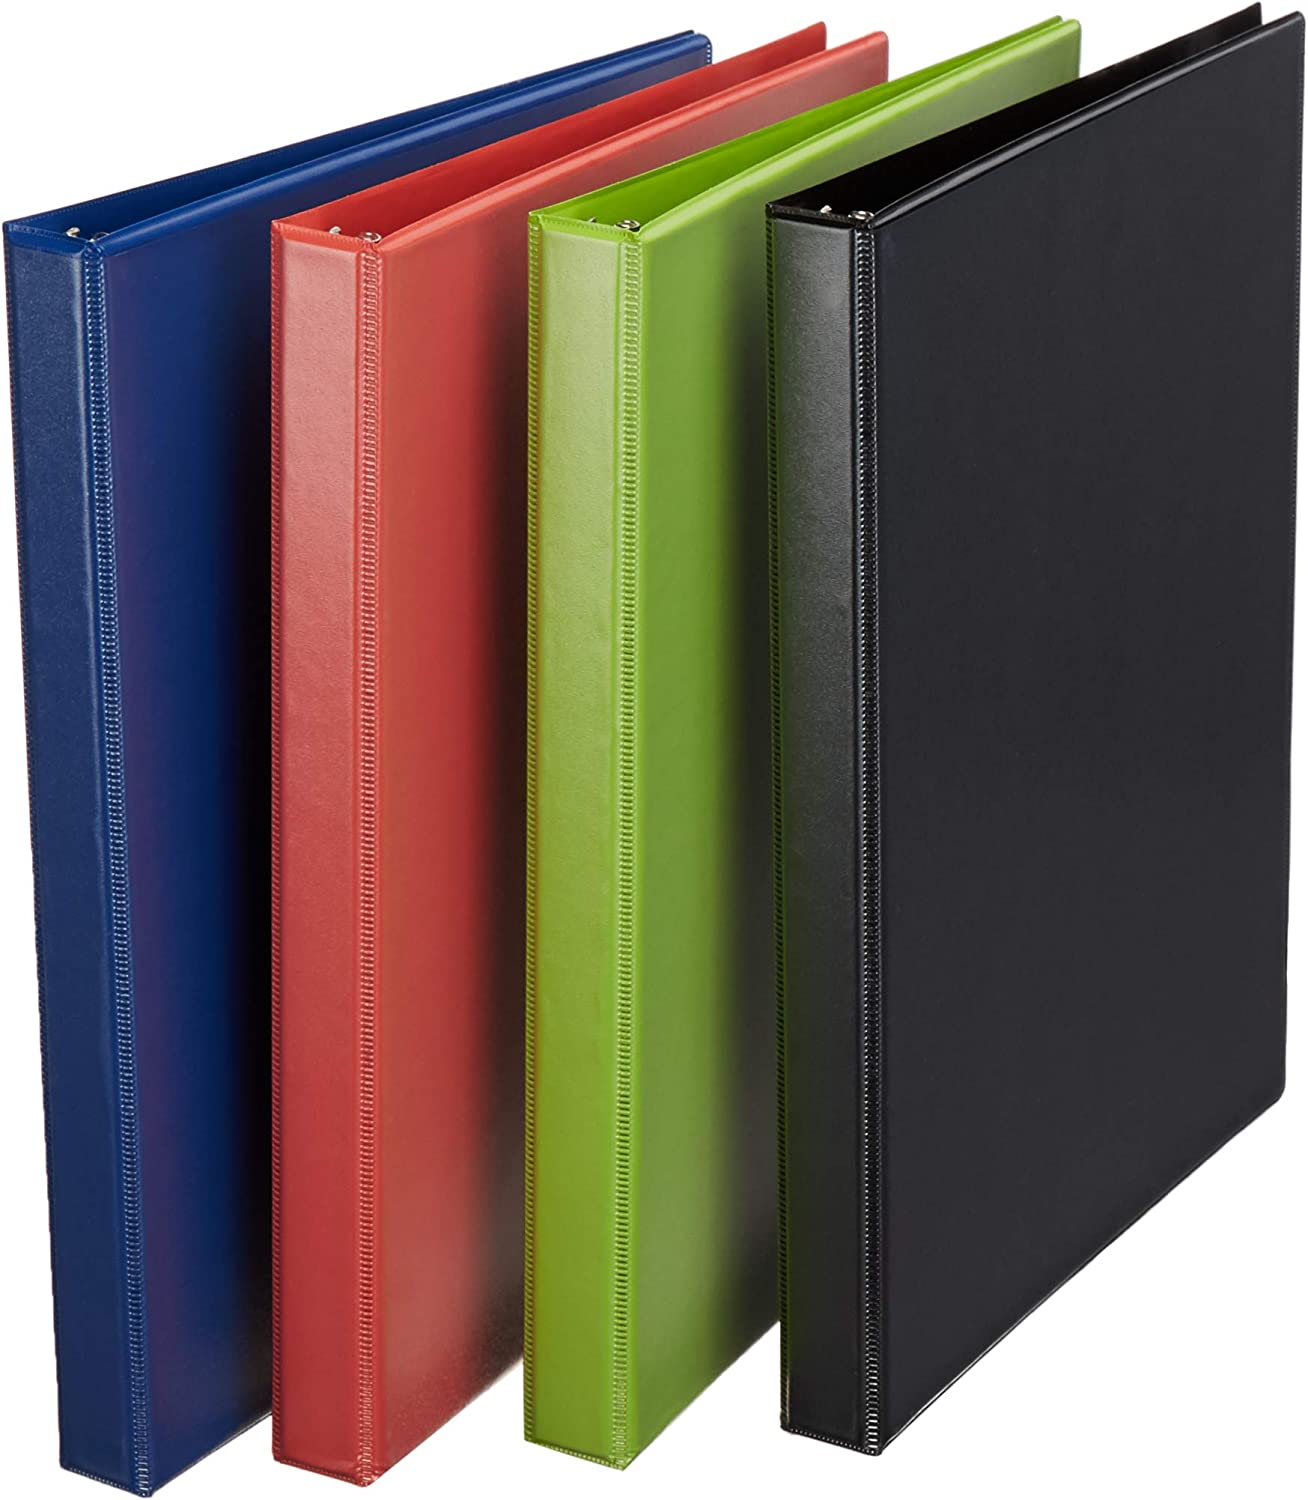 AmazonBasics 1/2-Inch Round Ring Binder, Mixed, View, 6-Pack